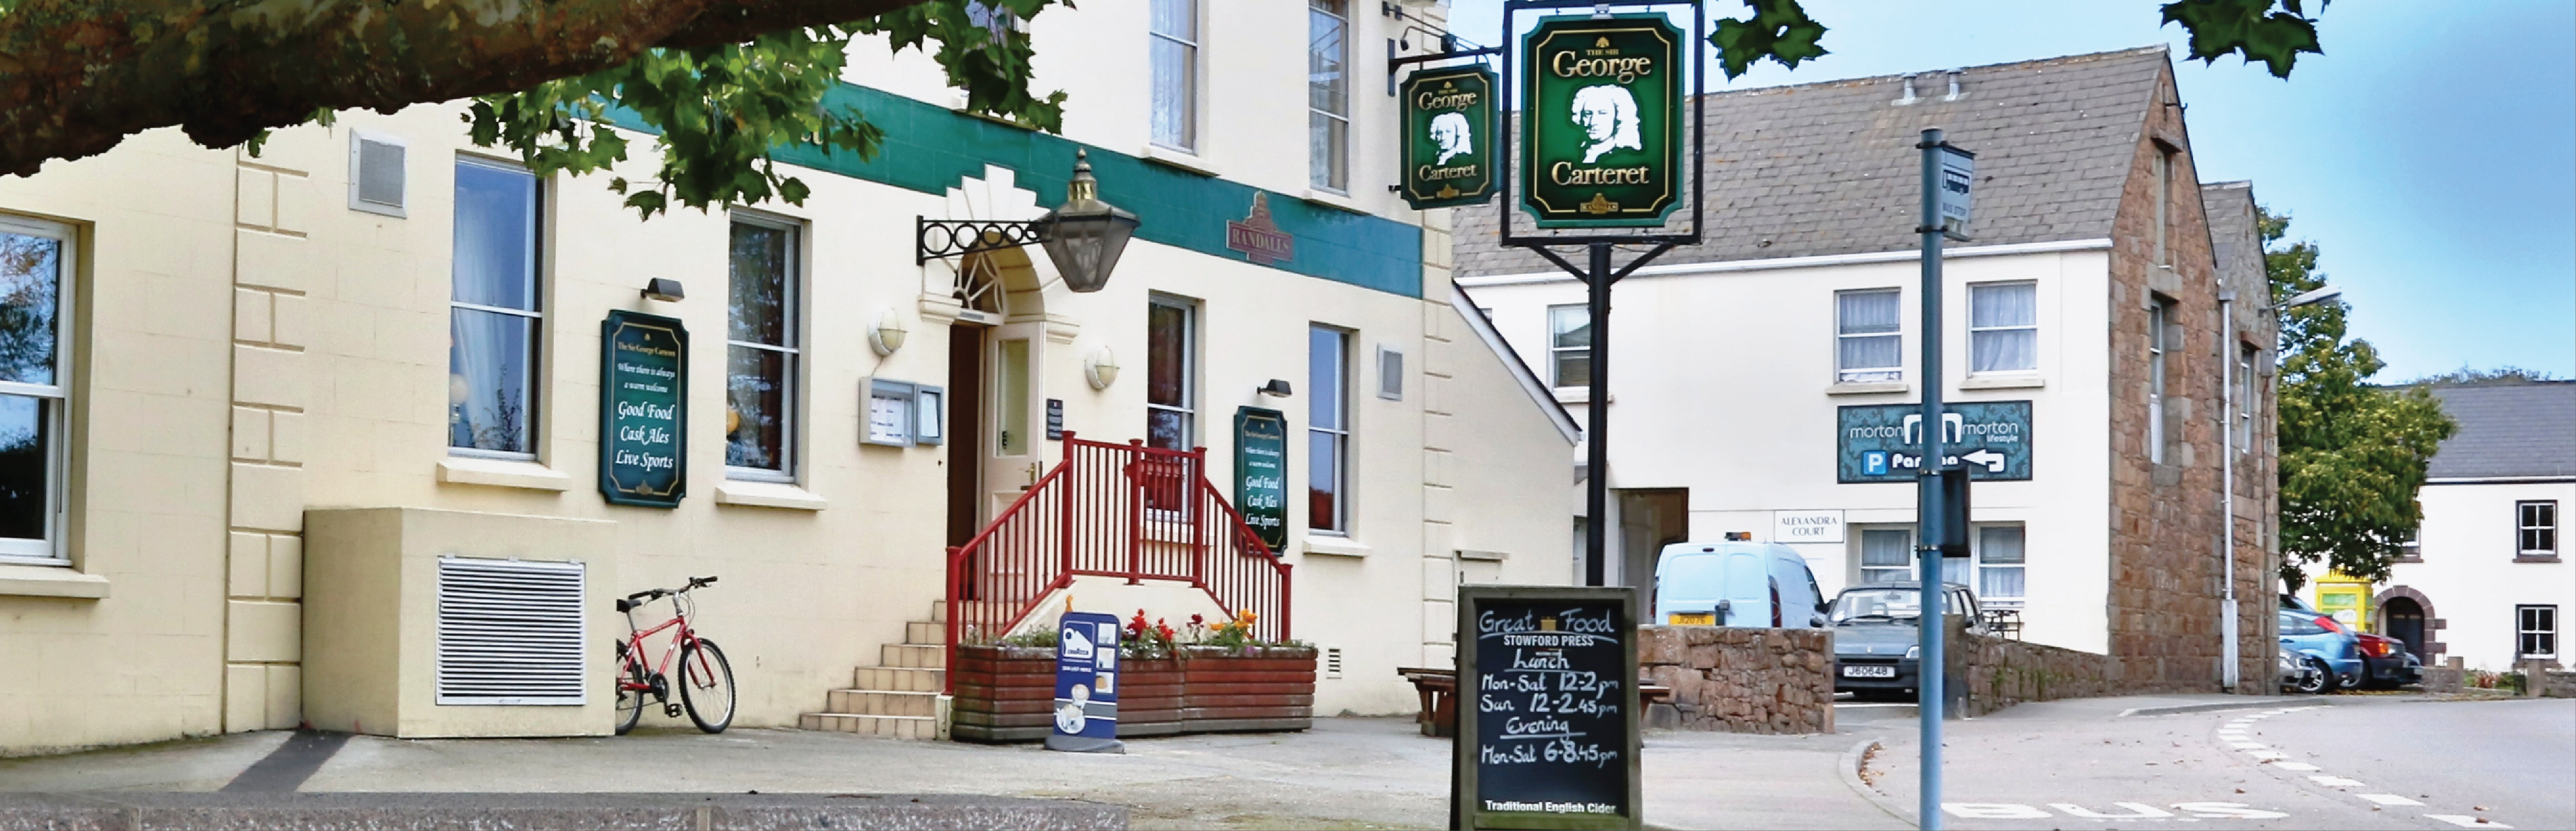 Randalls The Sir George Carteret Pub and Restaurant Jersey